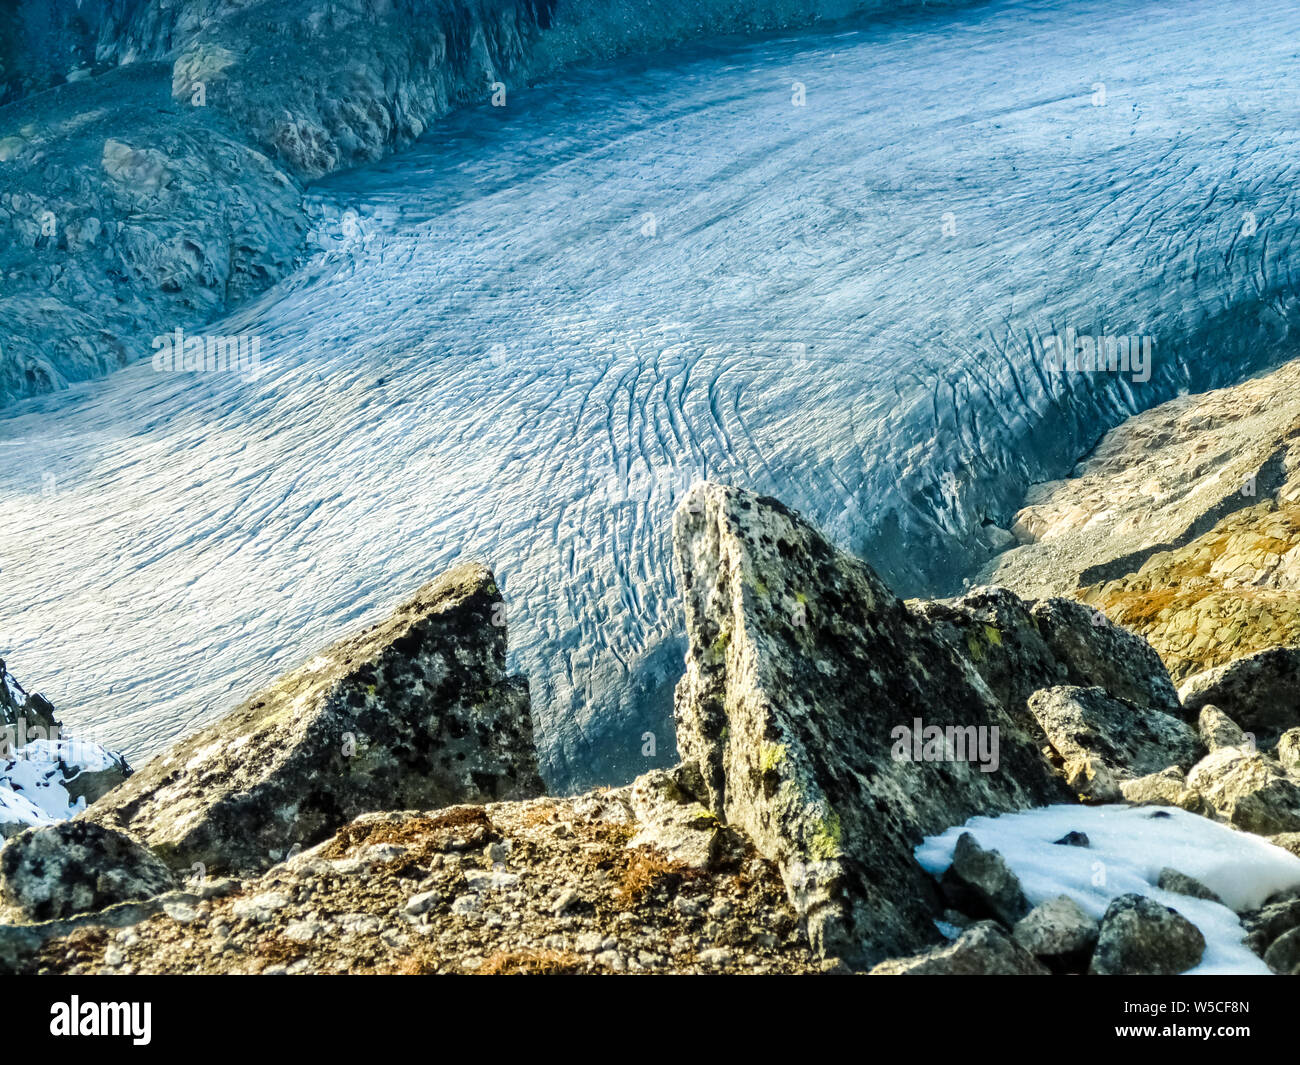 Rhone Glacier in the Swiss Alps, Switzerland Stock Photo